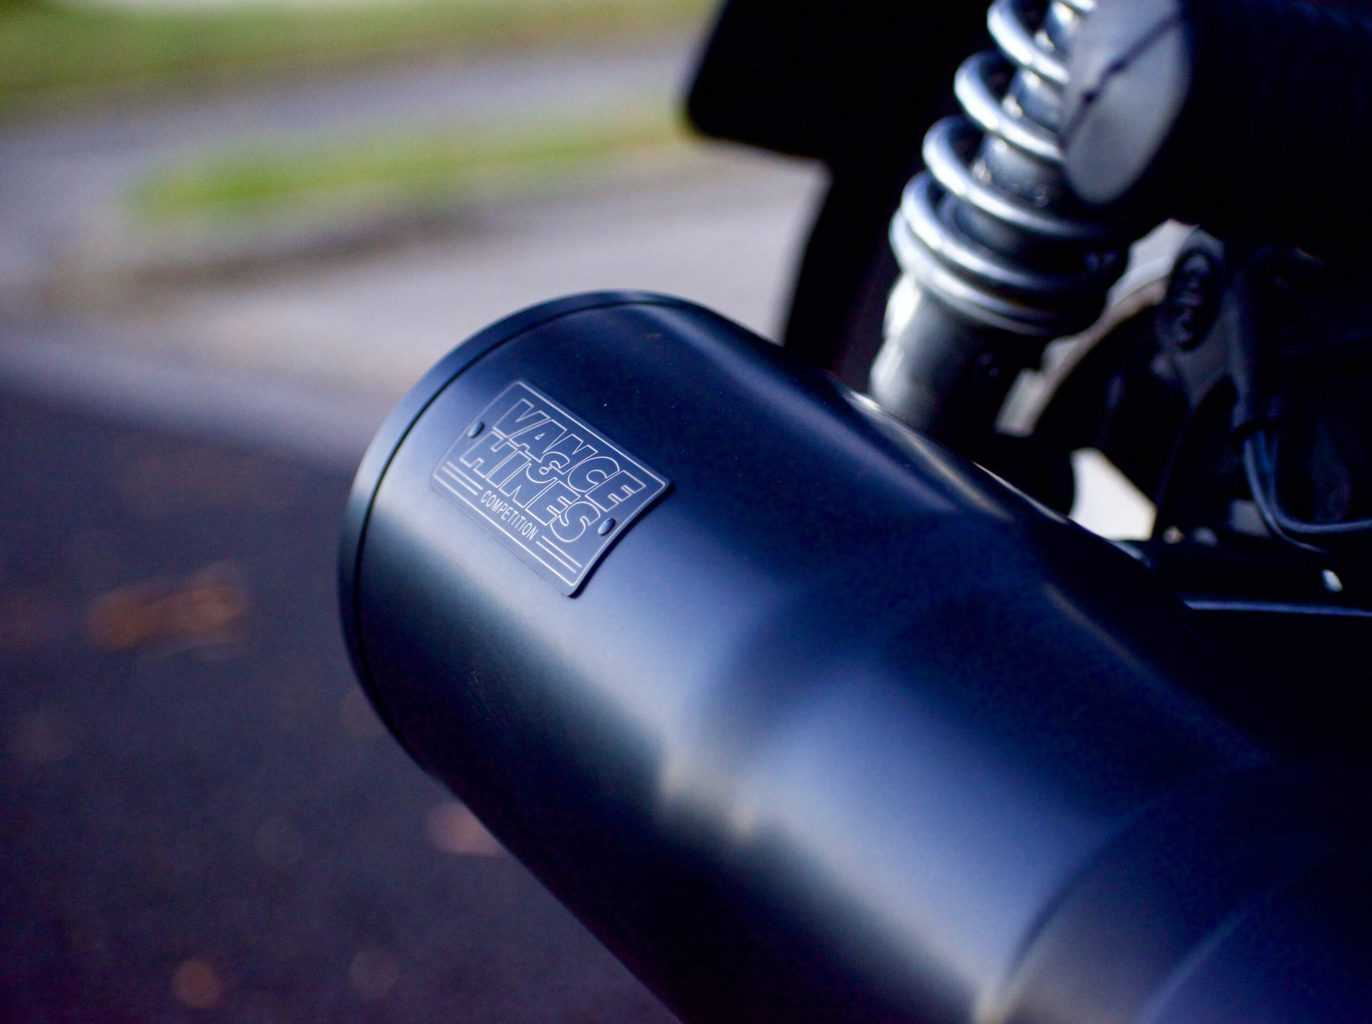 A close up shot of a black exhaust attached to the bike